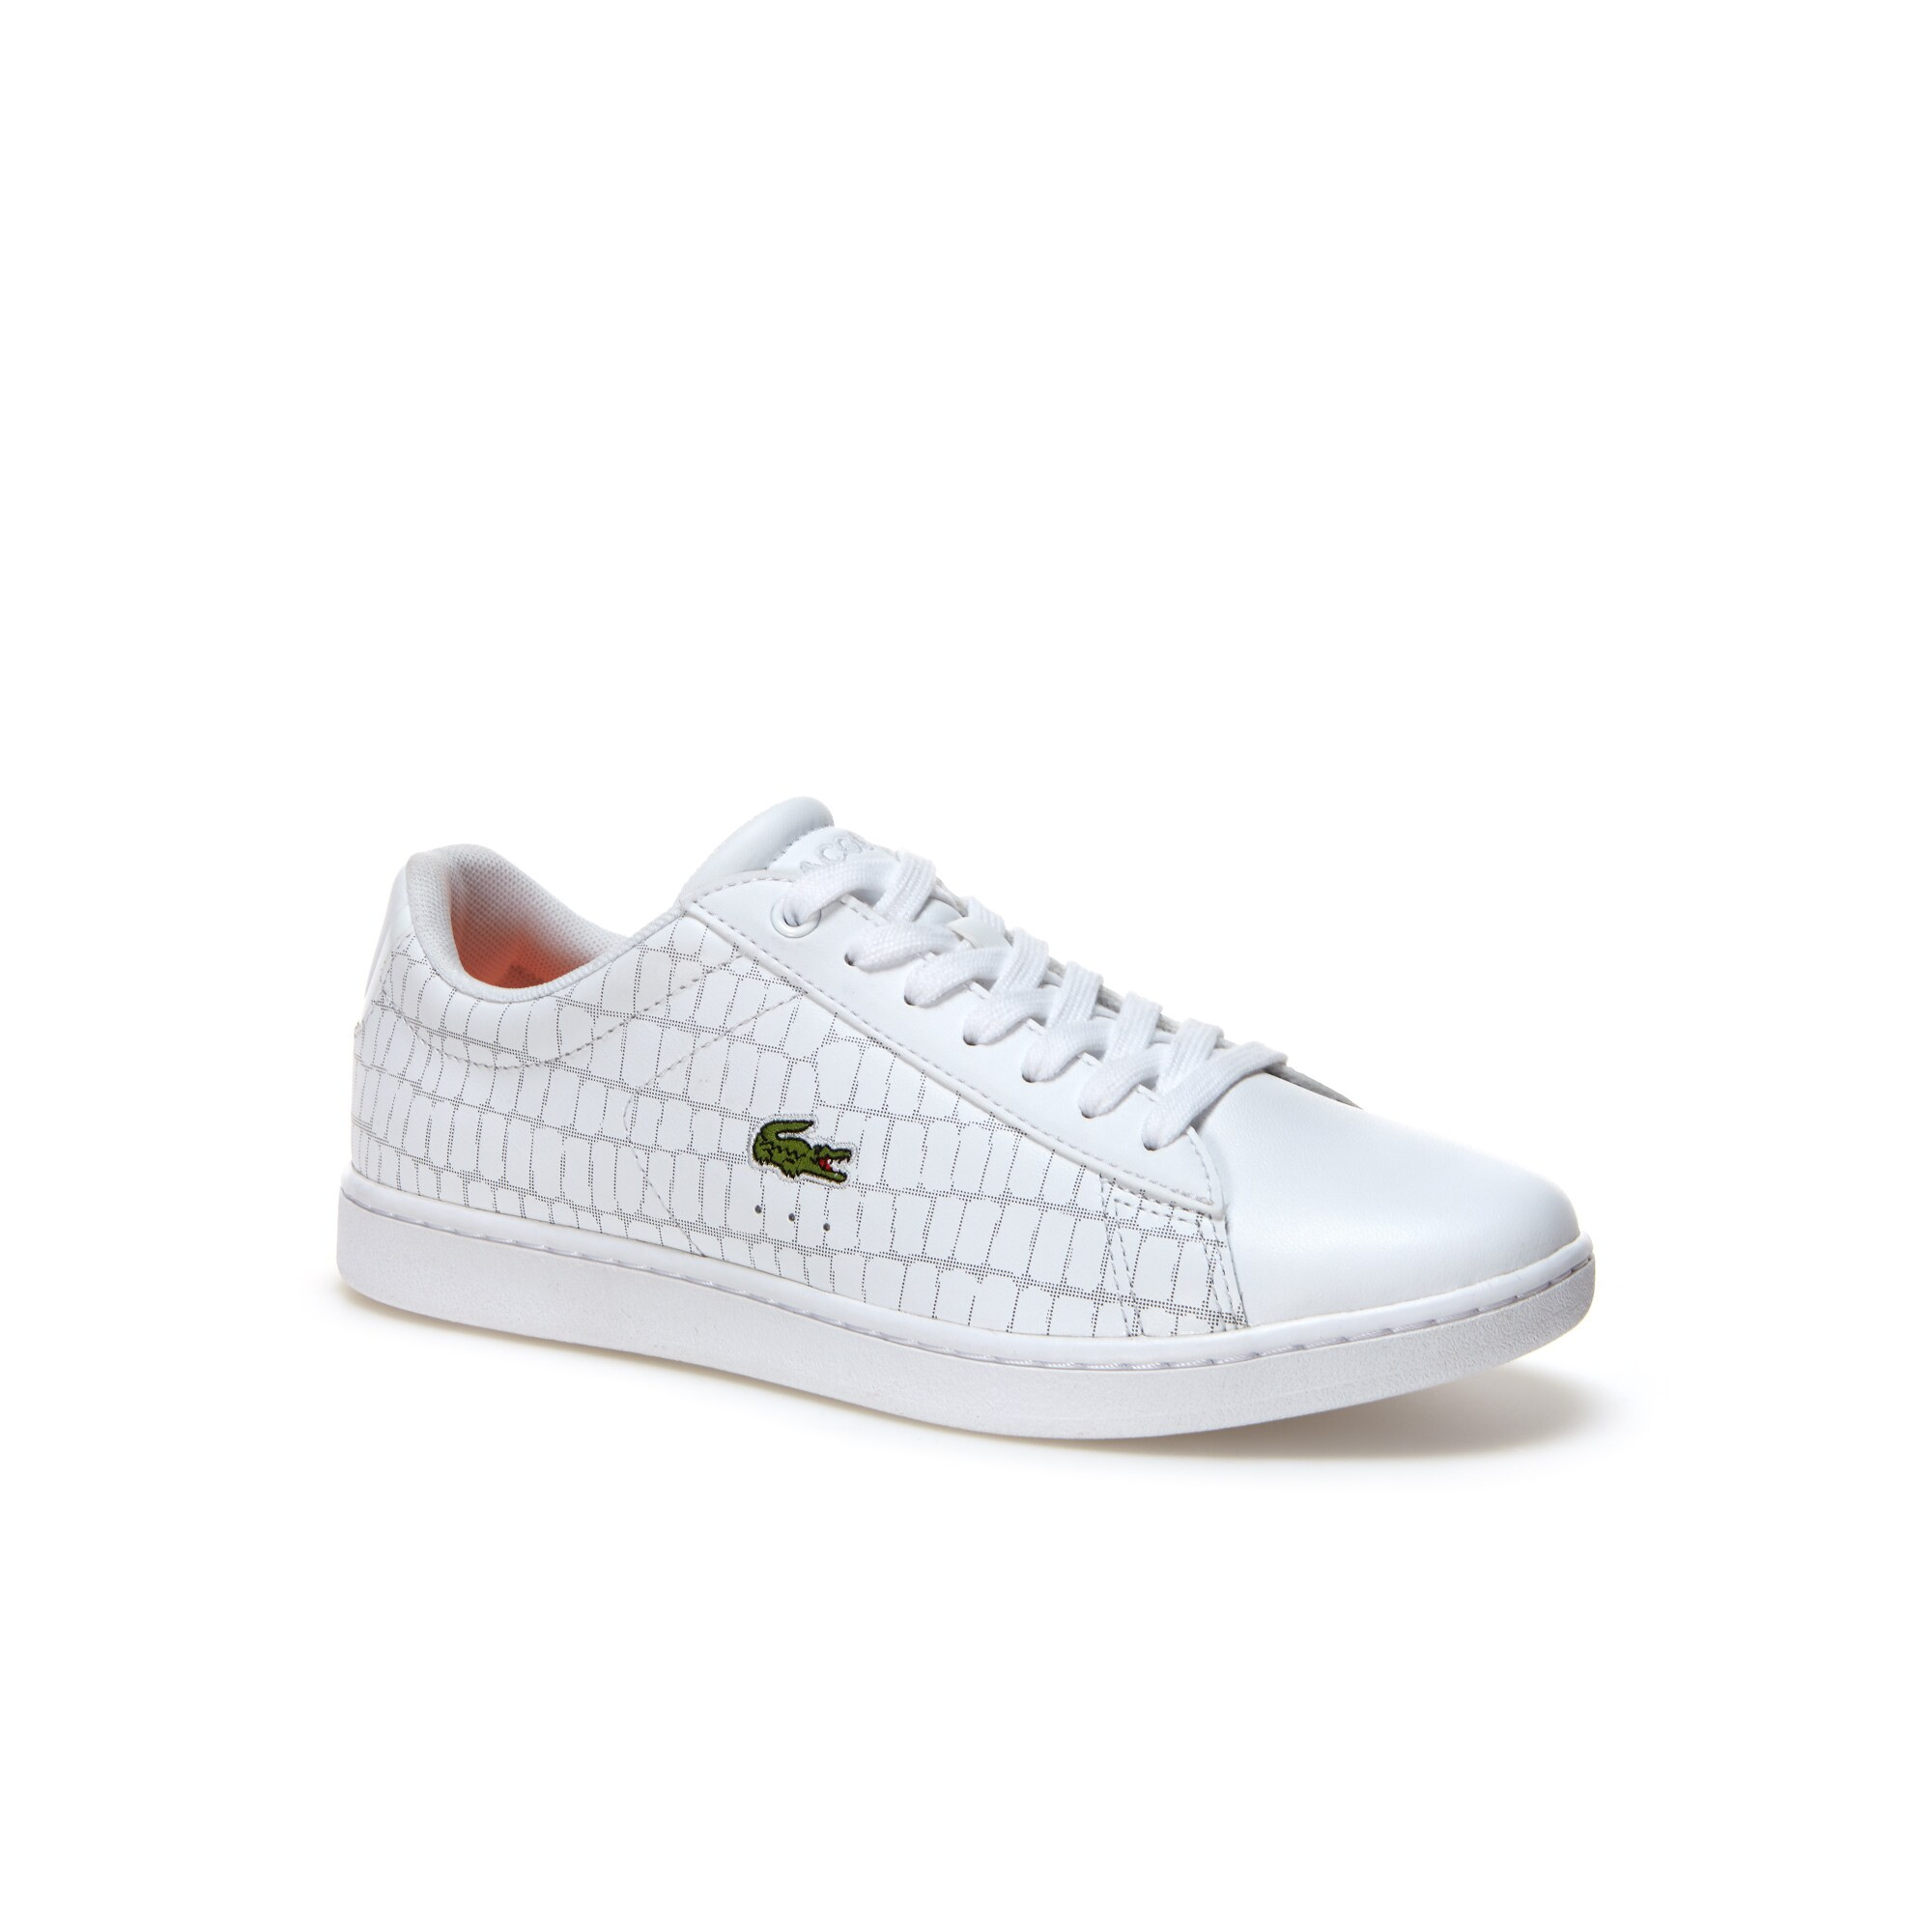 Women's Carnaby Evo Leather Trainers with Graphic 'croc' print